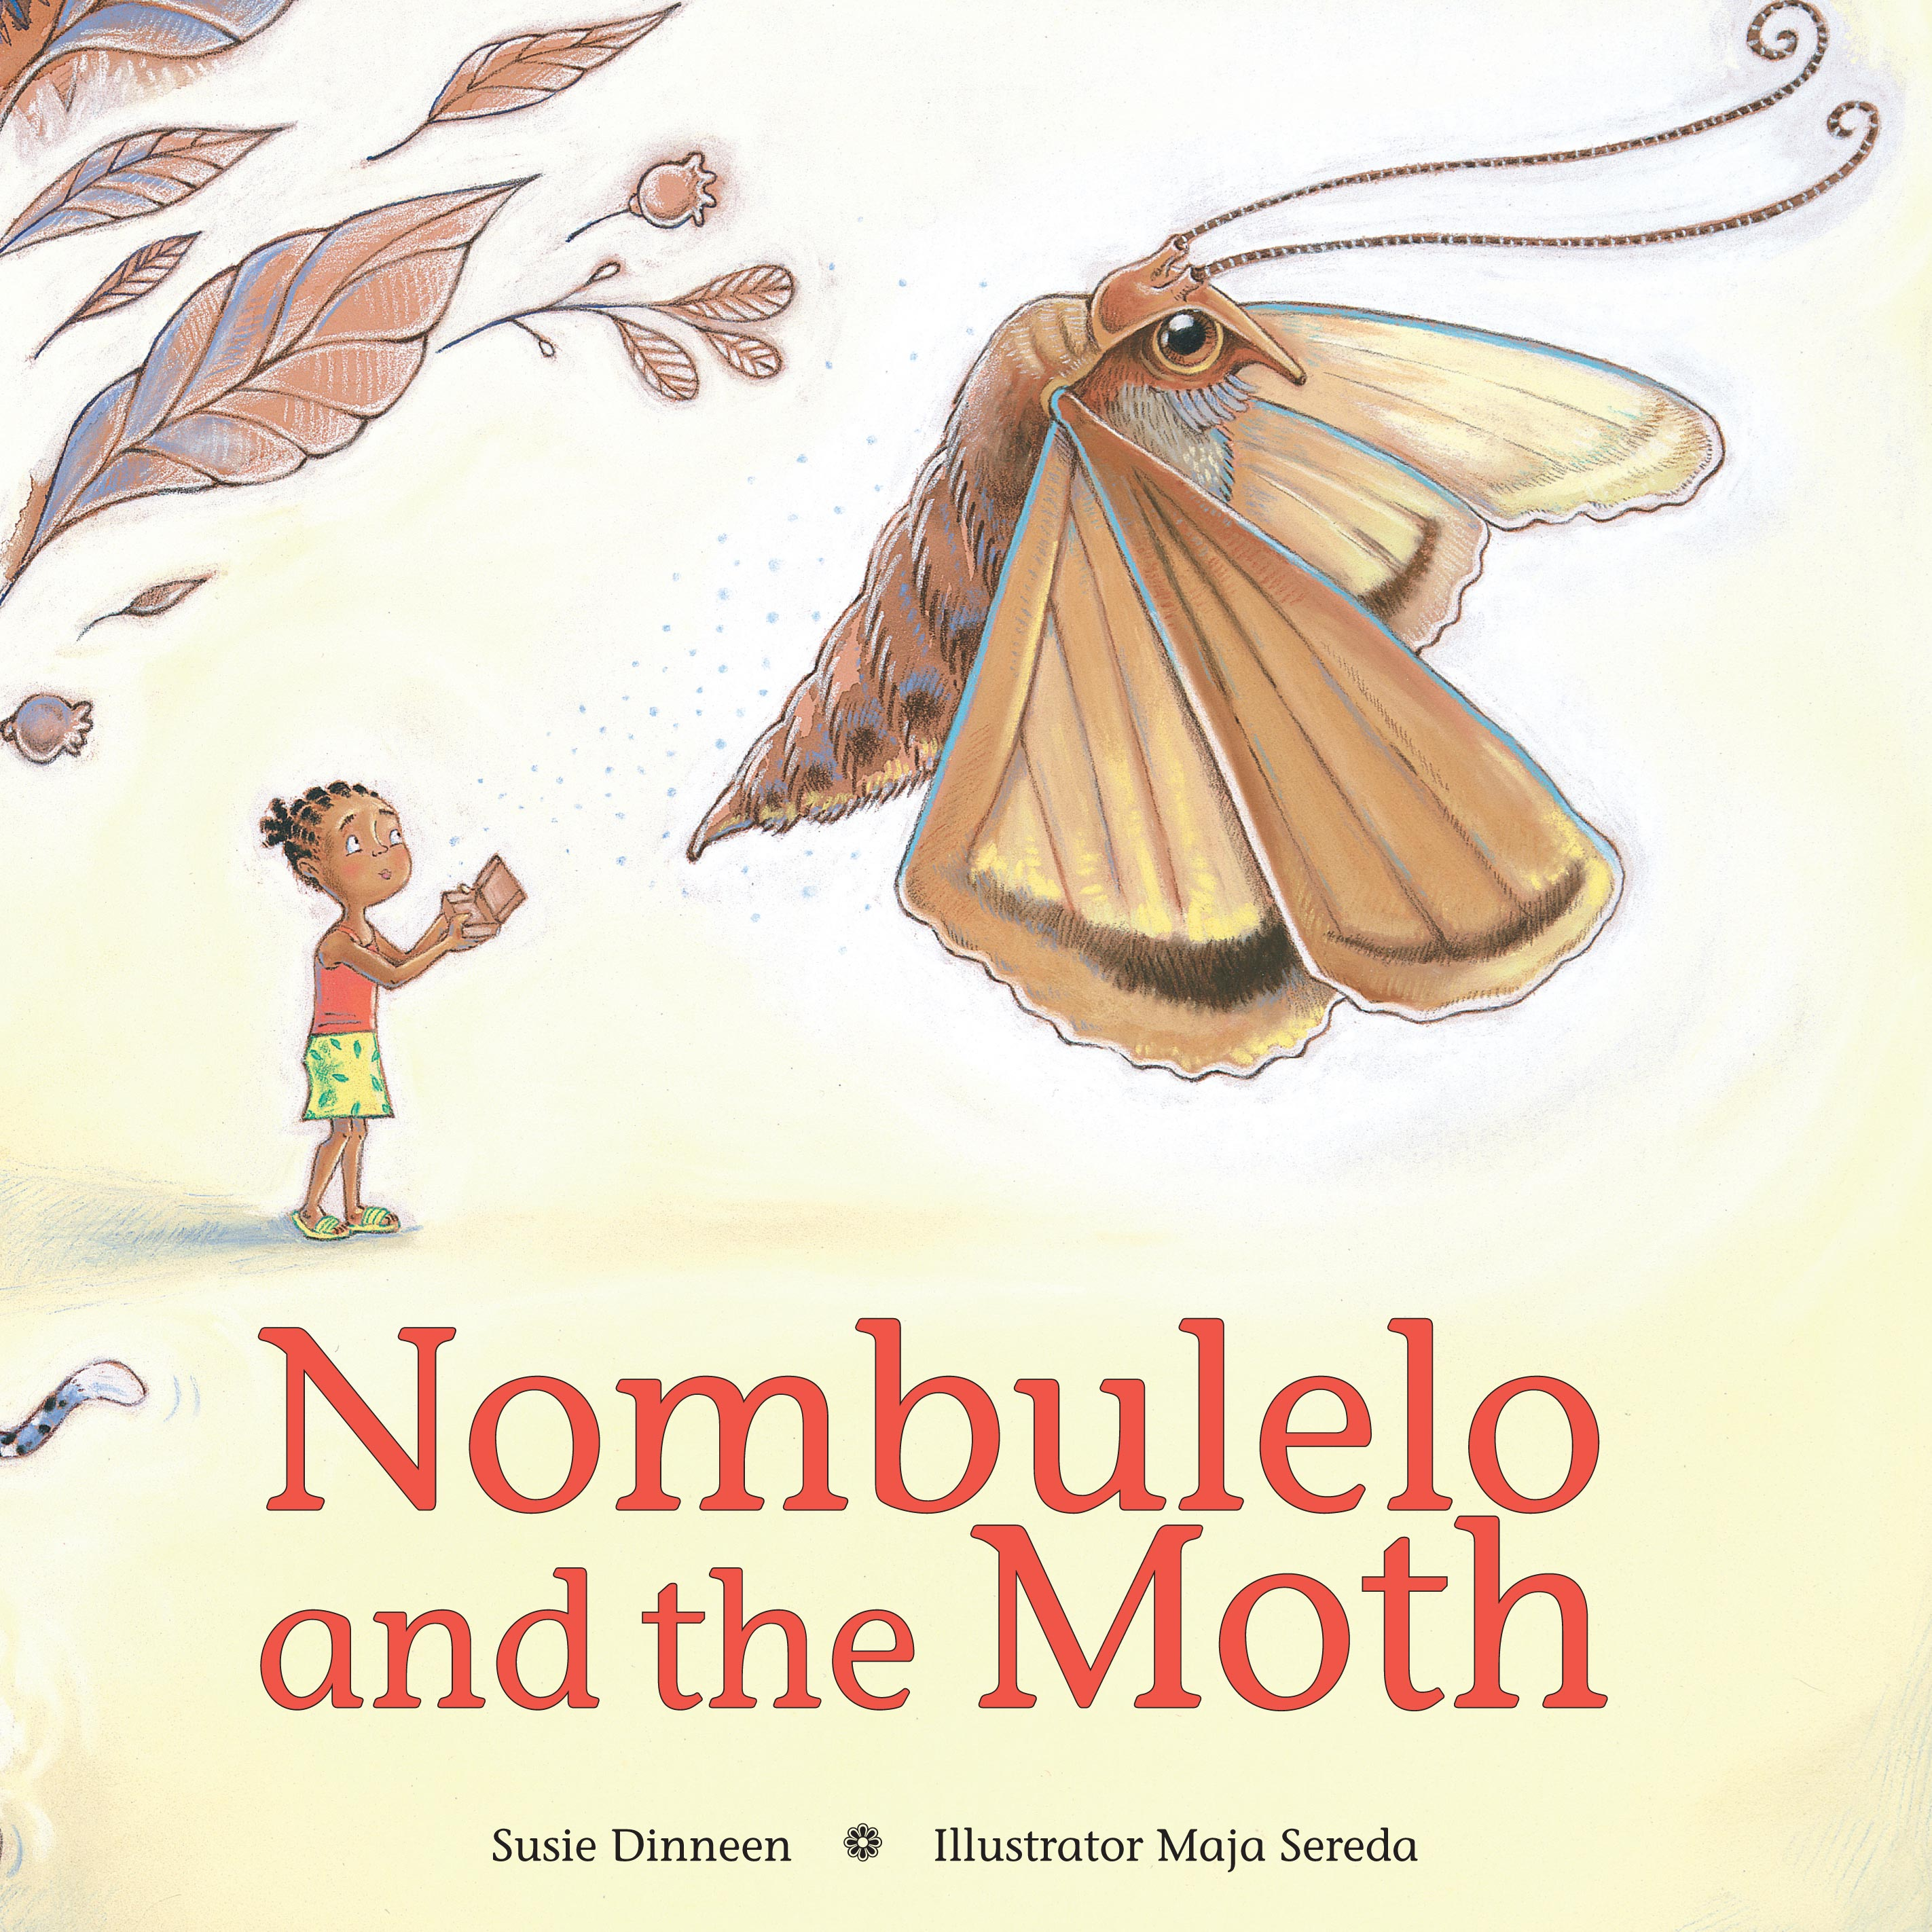 Nombulelo and the Moth|HarassedMom